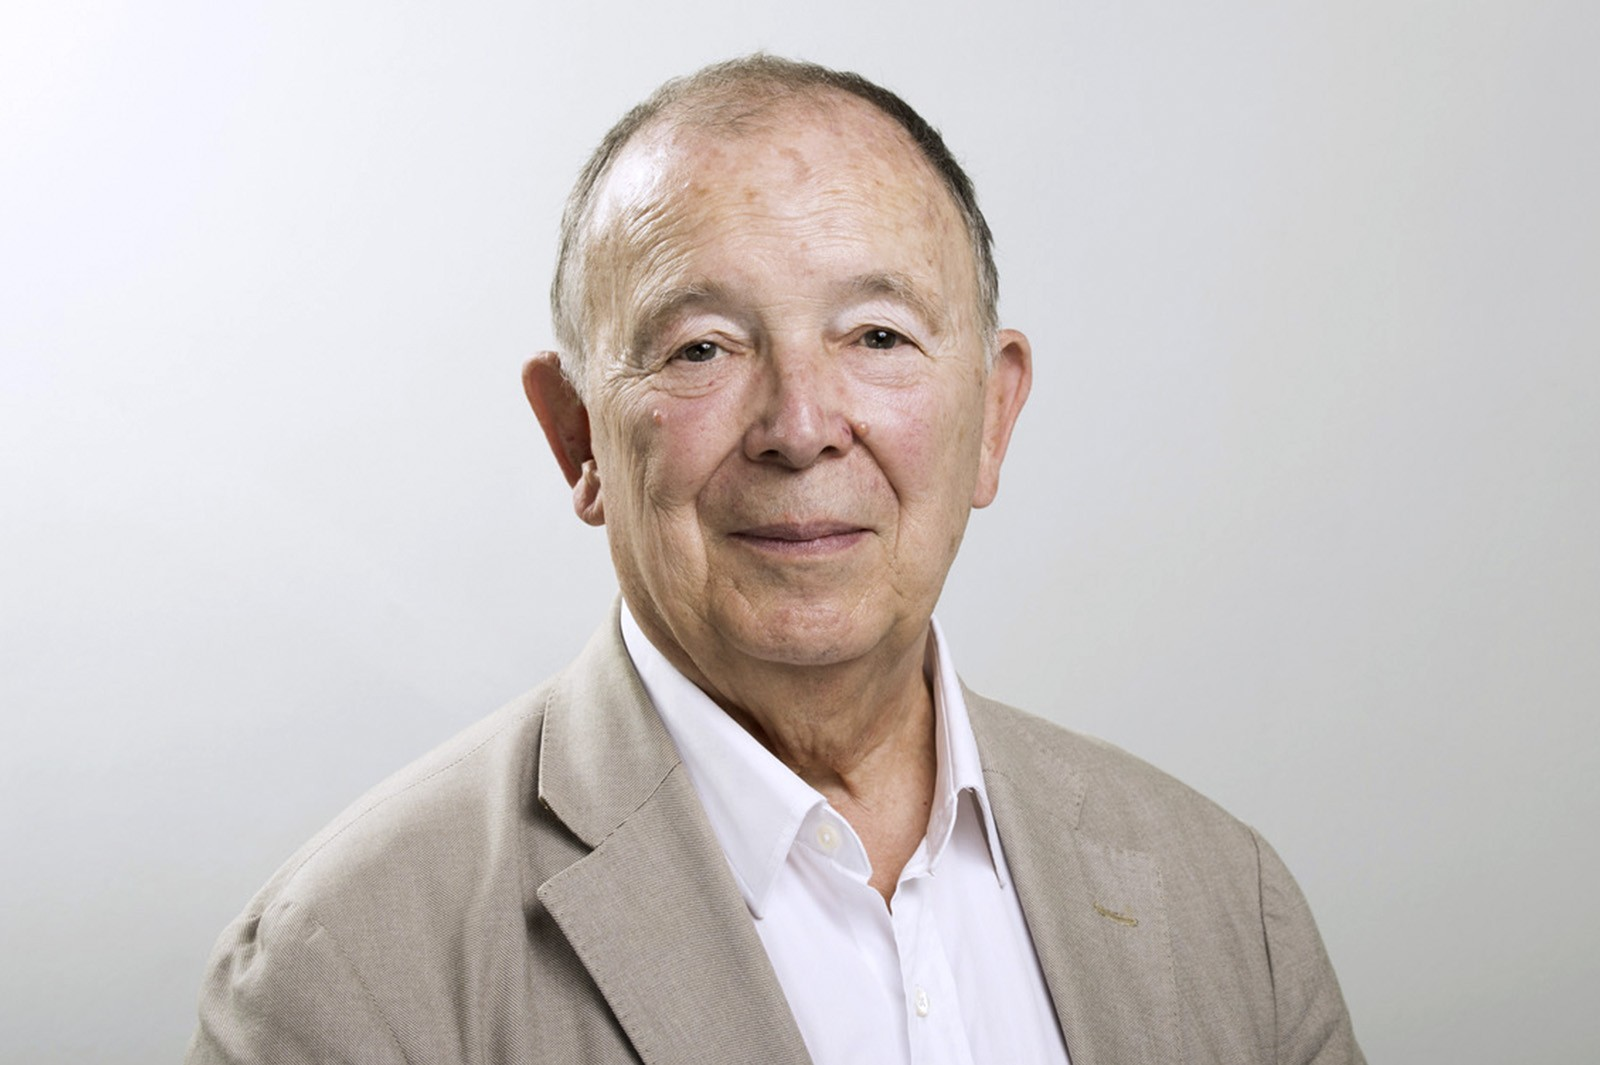 Professor Jean-Pierre Changeux